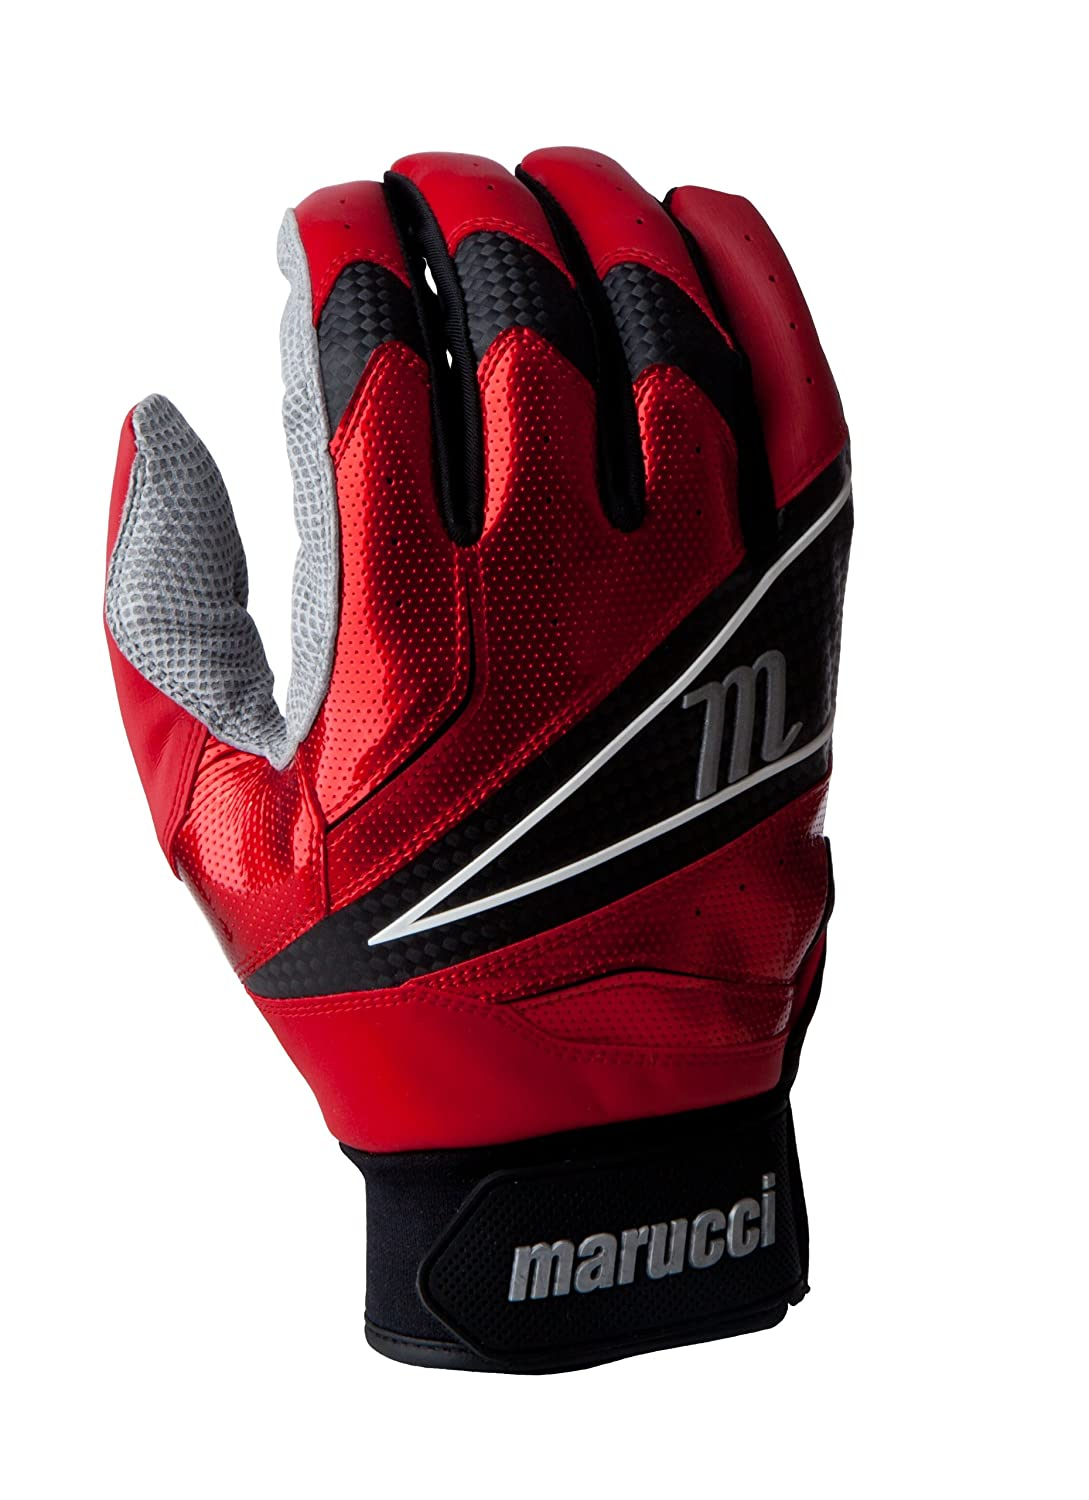 Marucci 2014 ELITE Batting Gloves B00EUBCY7W XL|レッド レッド XL